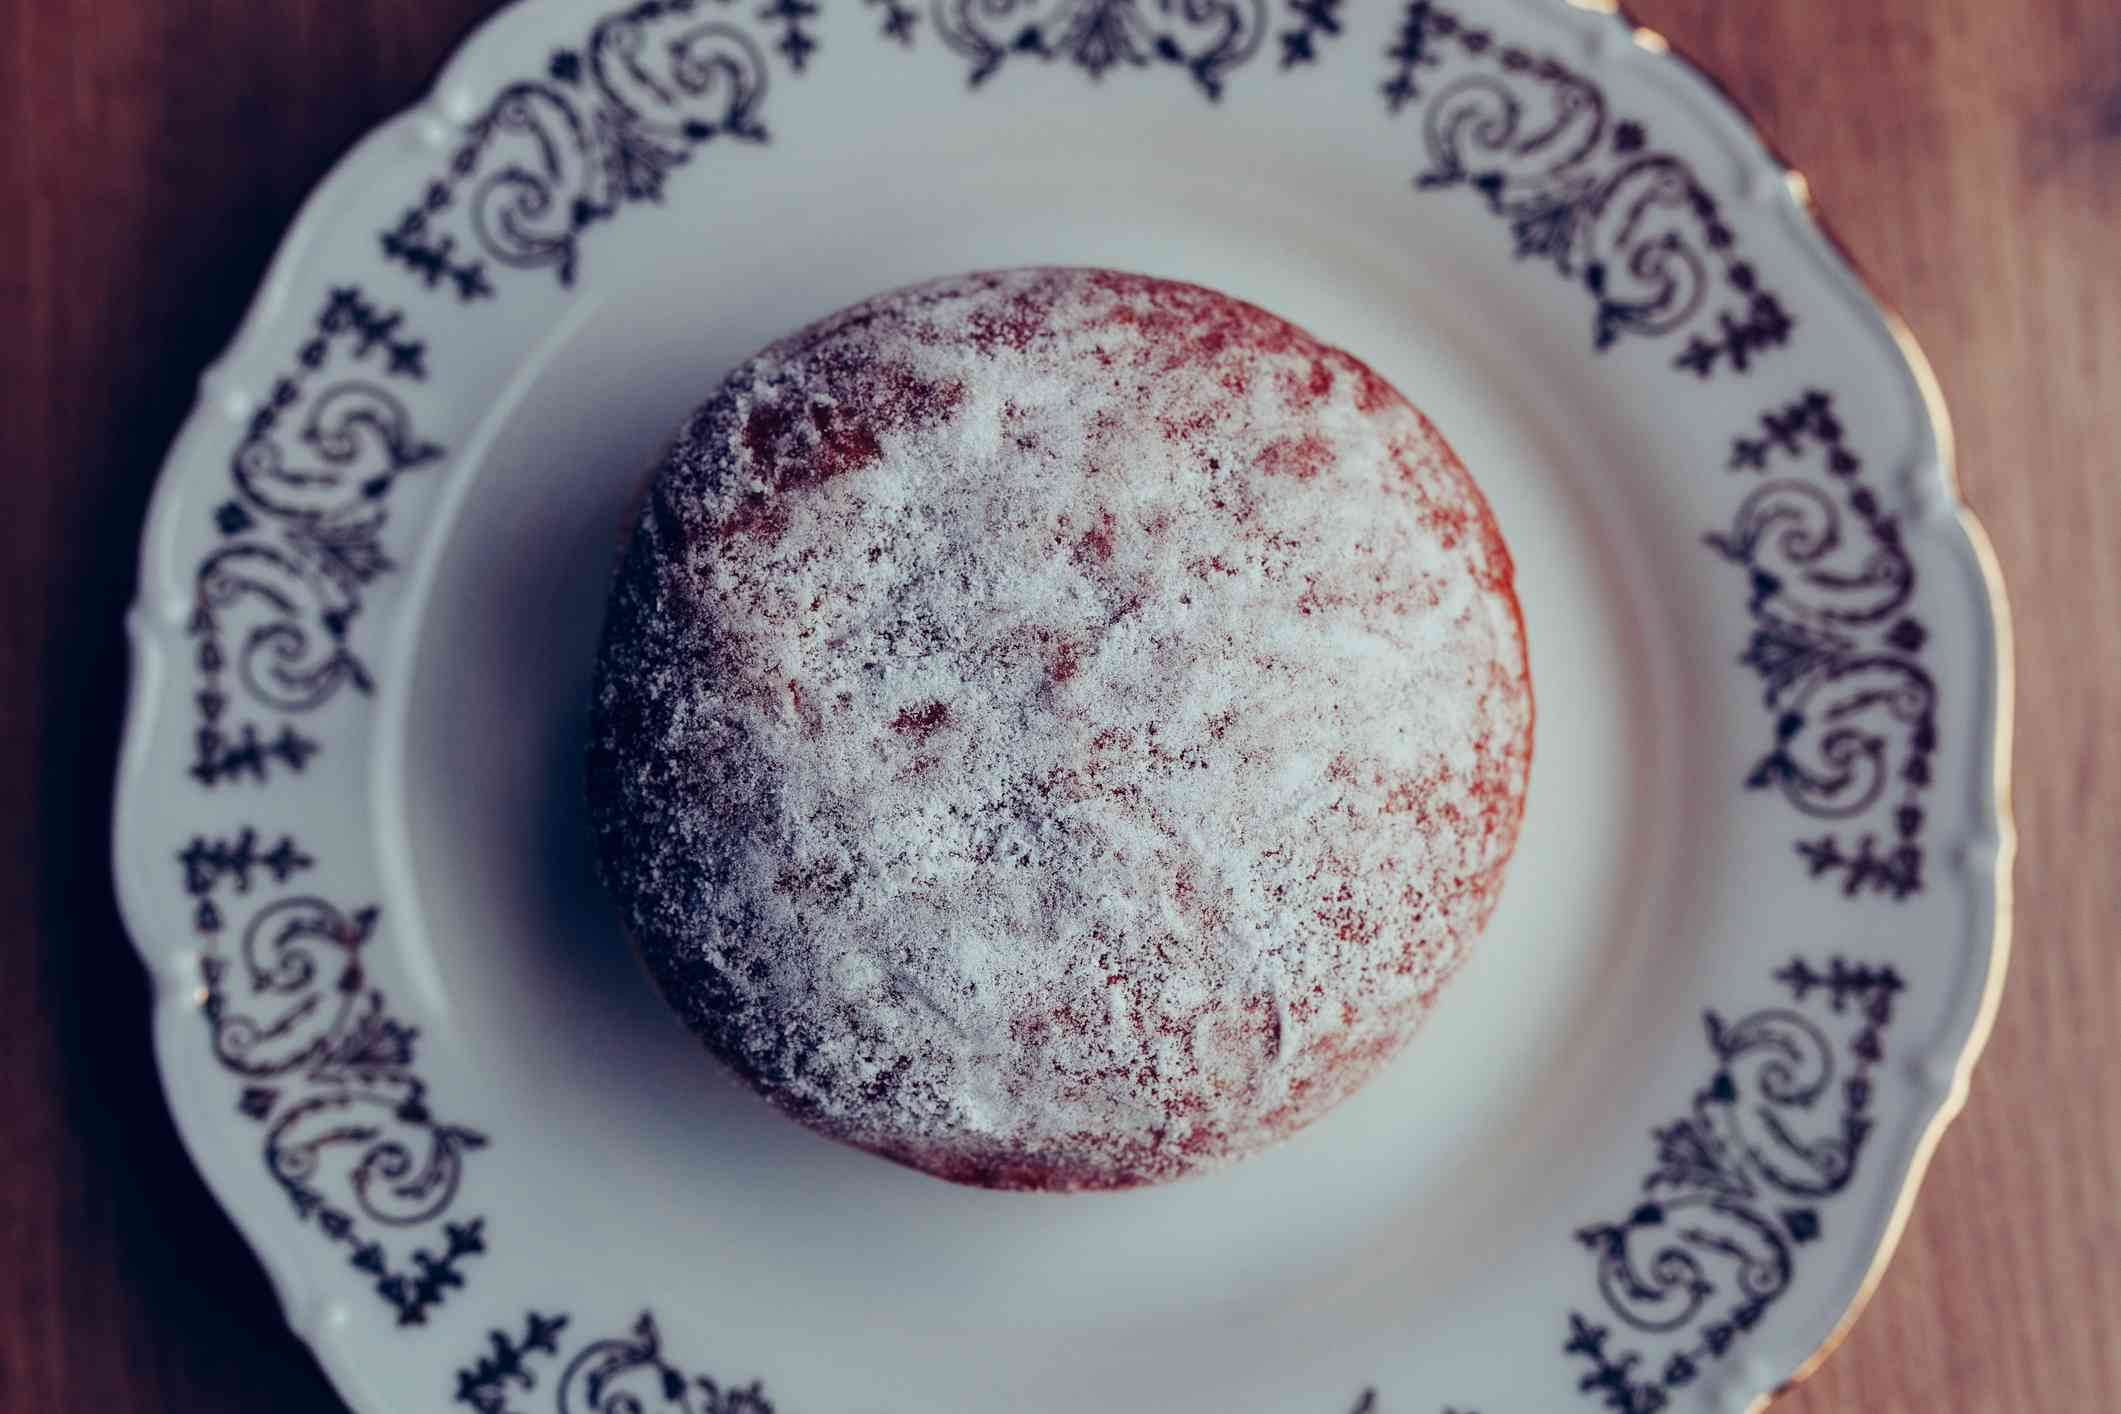 Fresh homemade jelly filled doughnut on a plate, covered in powdered sugar